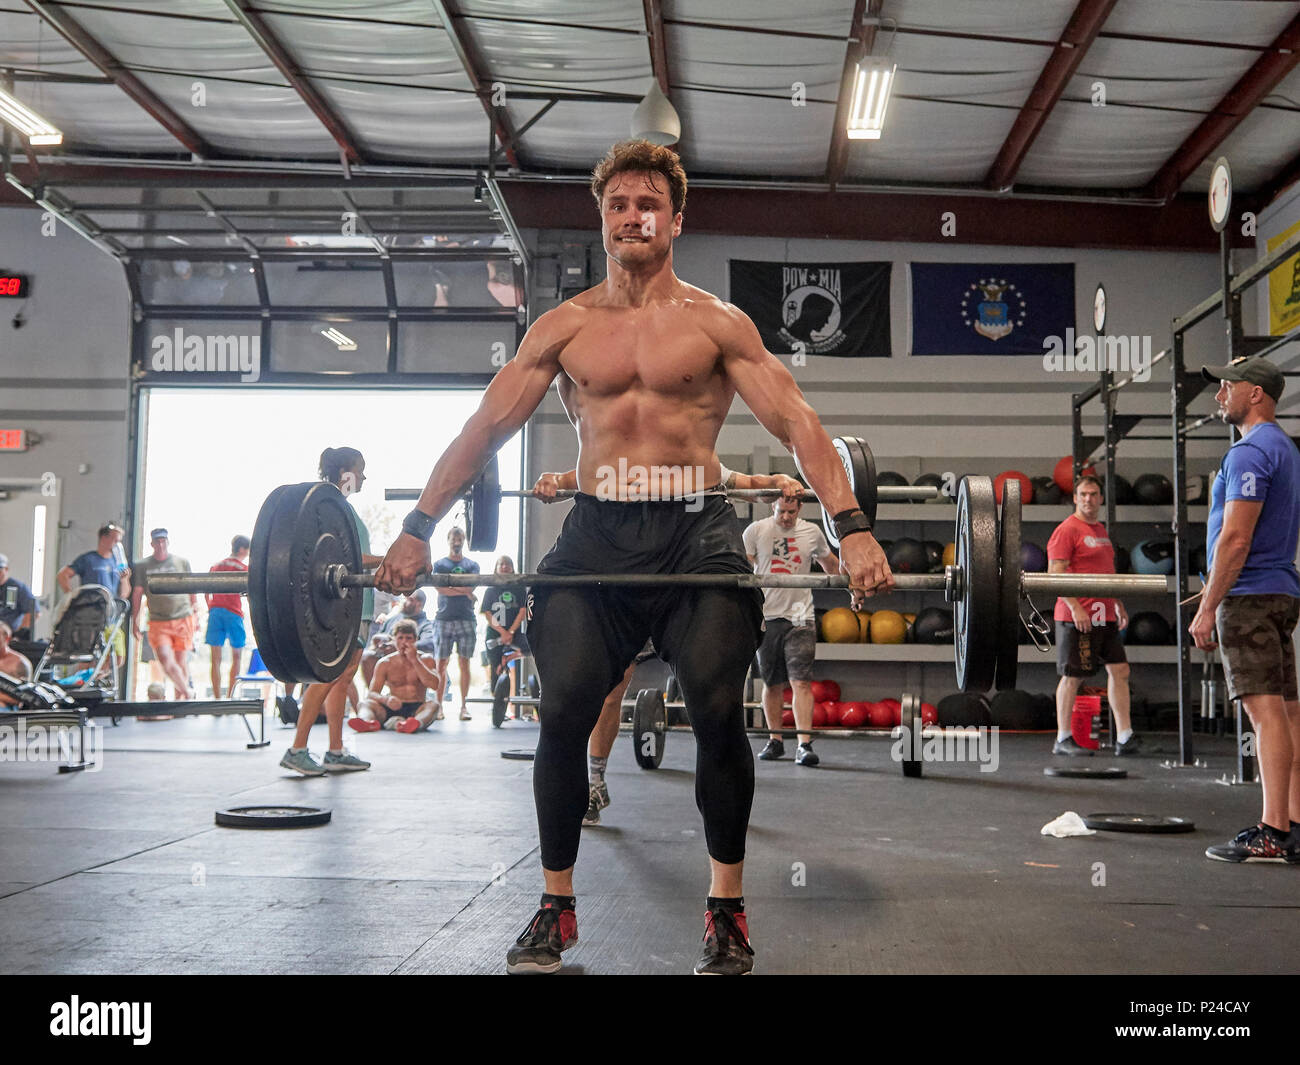 Male or man competing in a CrossFit fitness challenge competition by dead lifting weights inside a gym in Montgomery Alabama, USA. - Stock Image